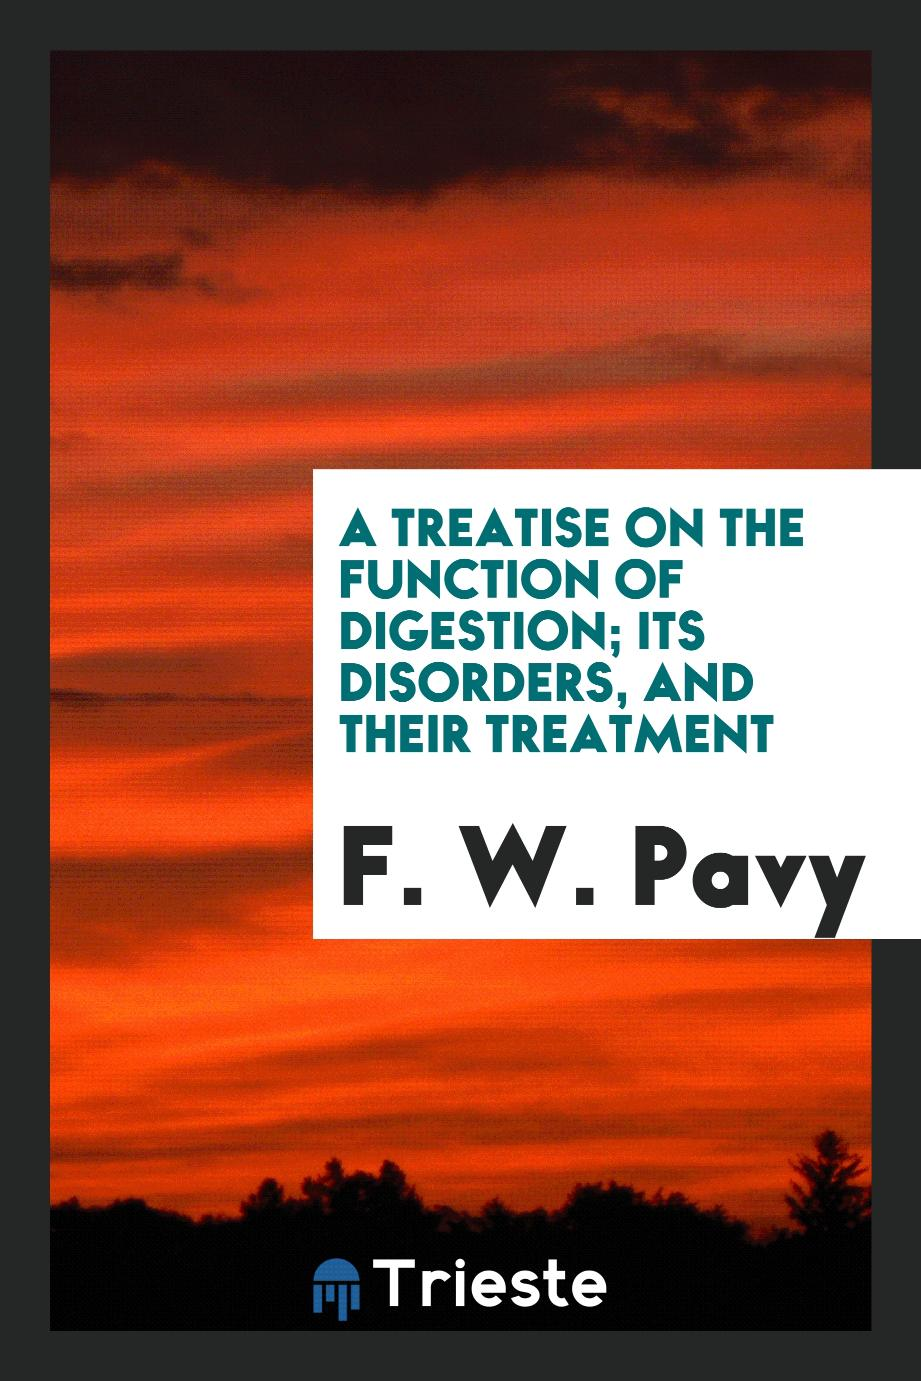 A Treatise on the Function of Digestion; Its Disorders, and their Treatment